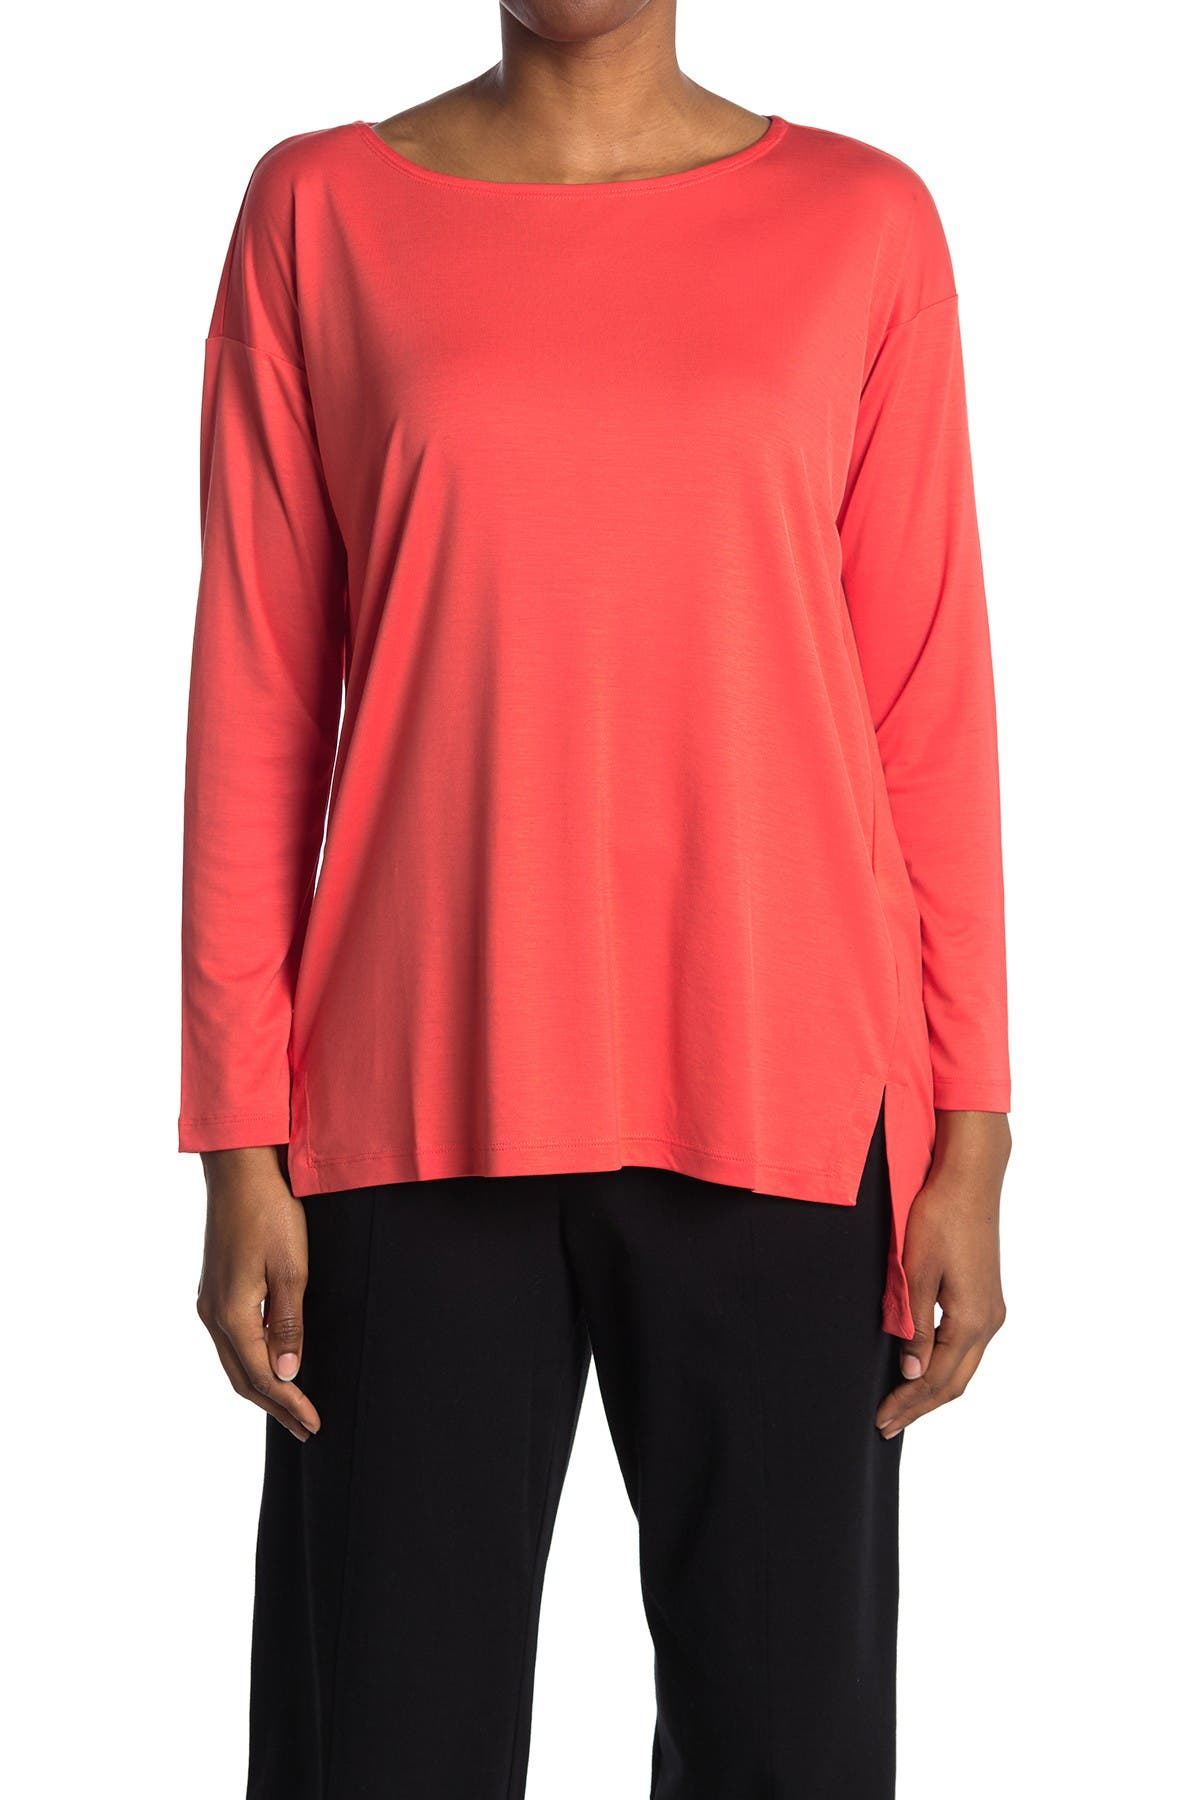 Image of Eileen Fisher Ballet Neck Box Top